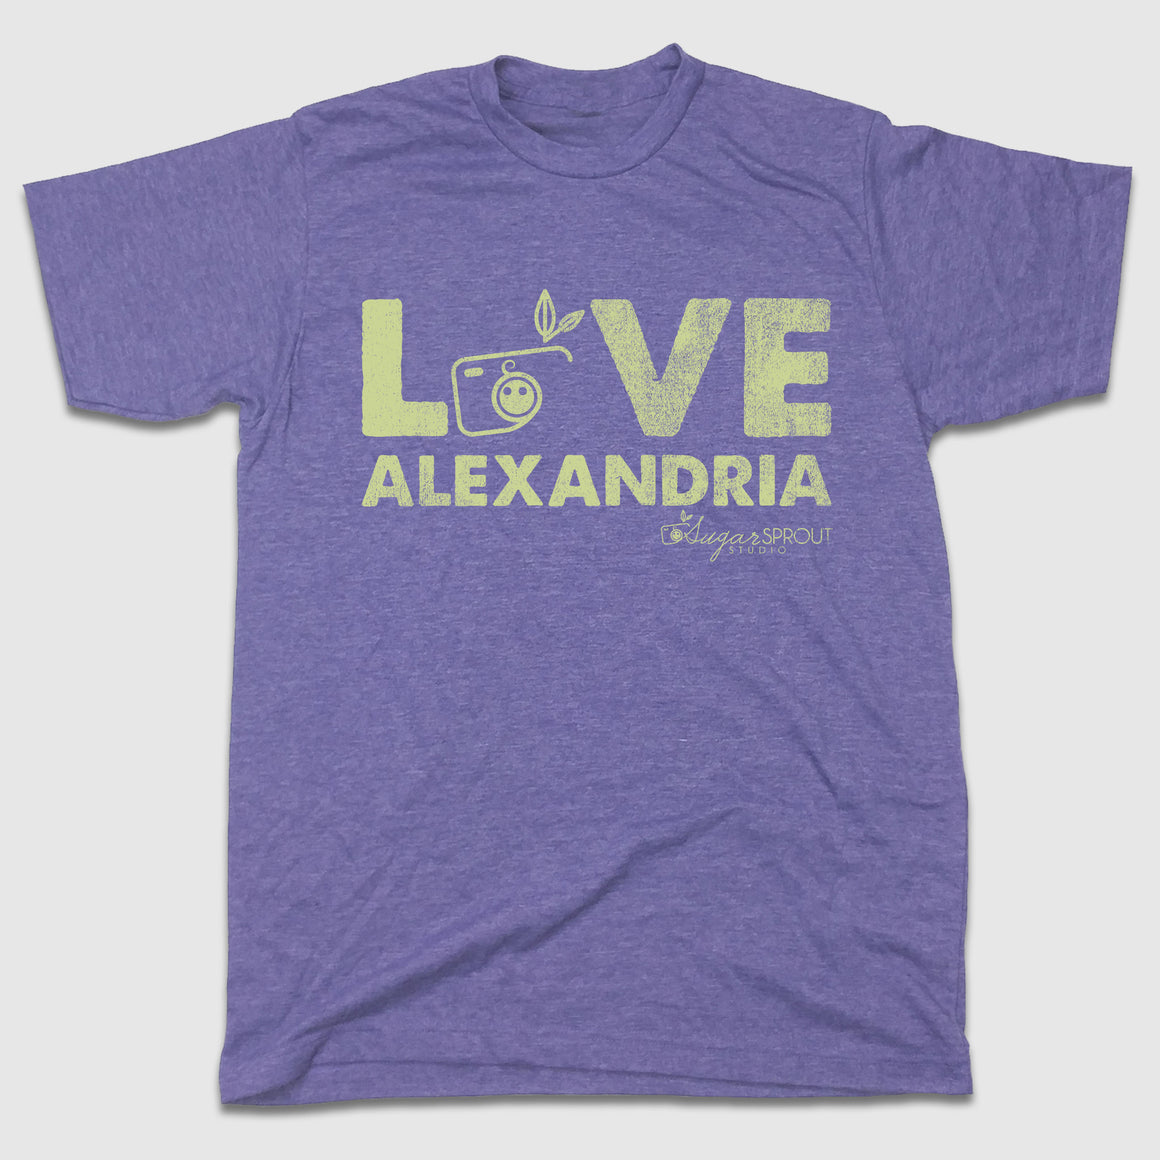 Love Alexandria - Sugar Sprout Studio - Cincy Shirts